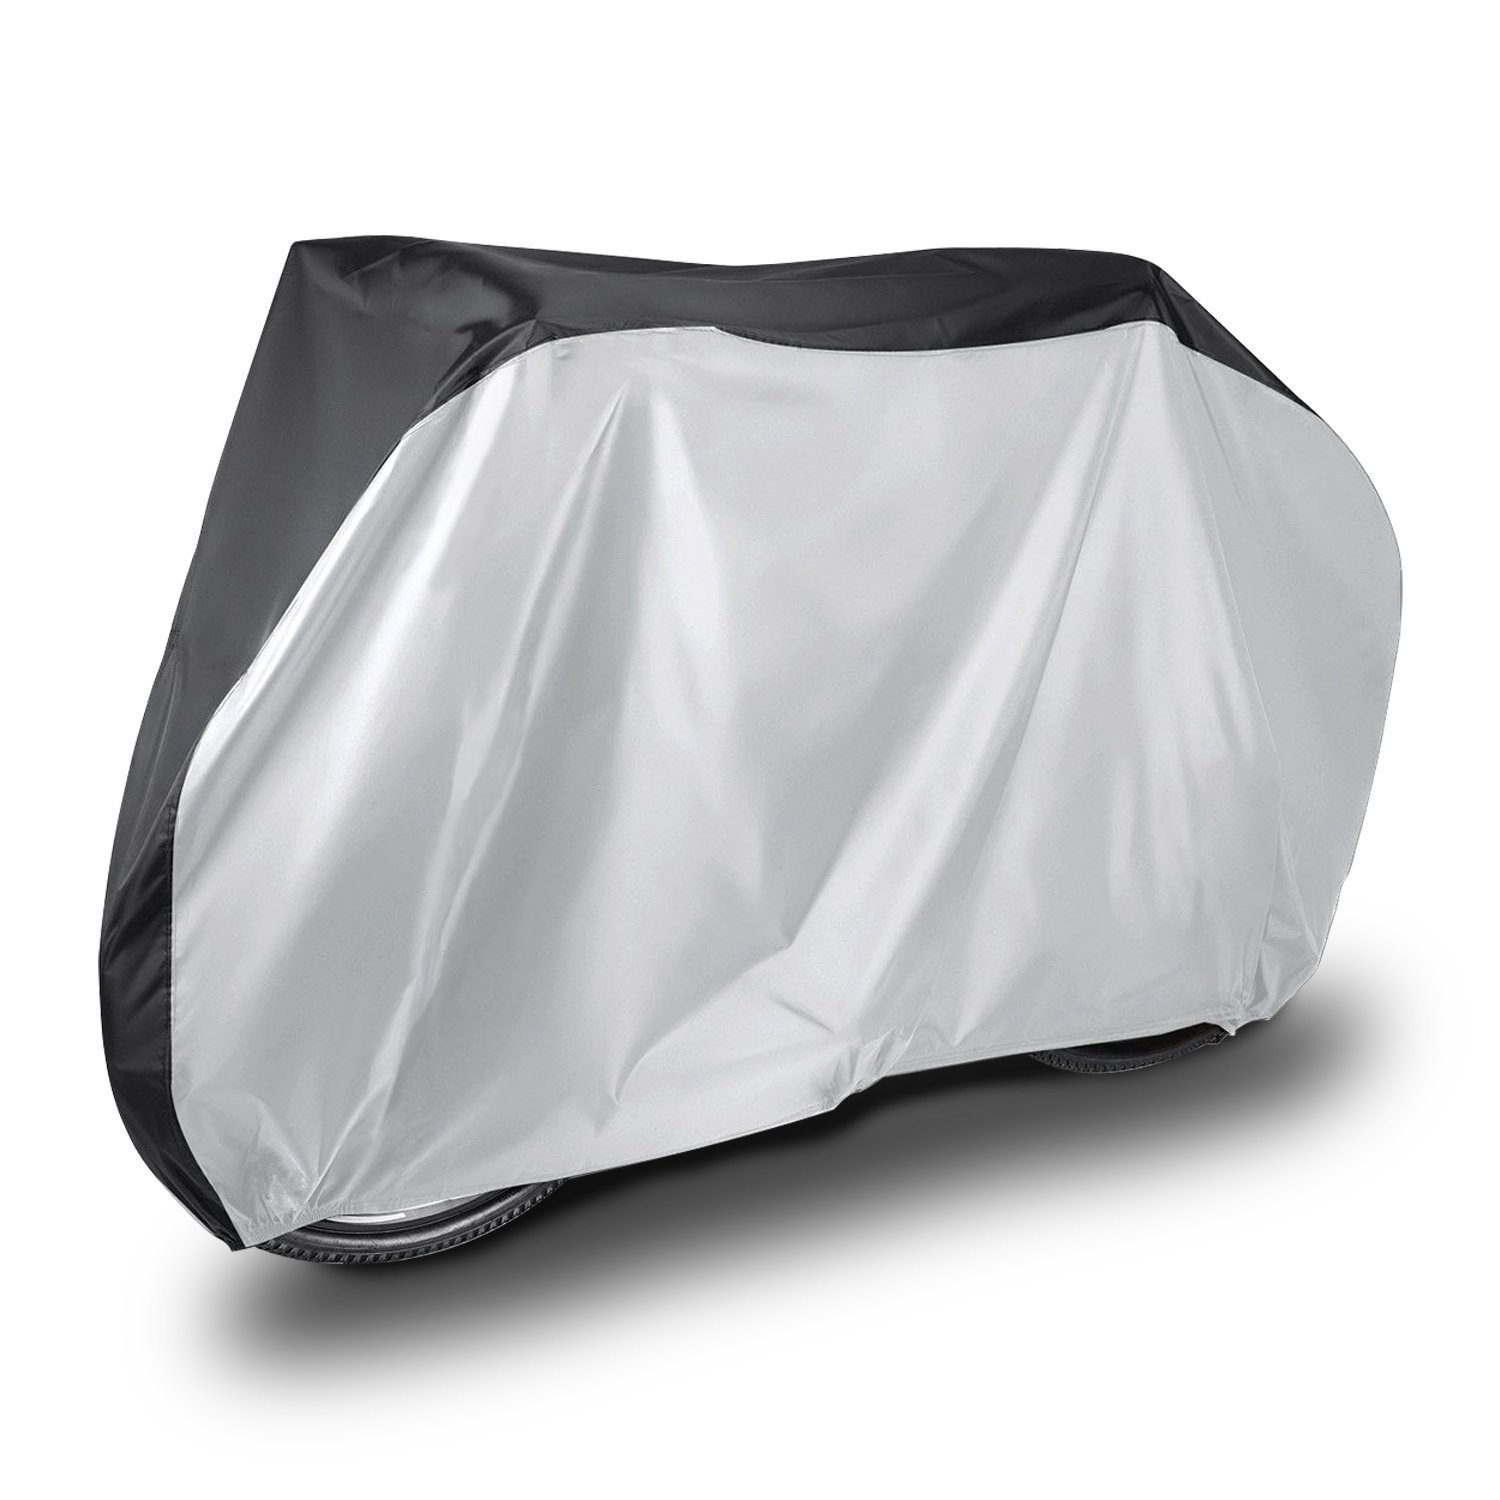 Ruiye Bicycle Cover Waterproof Outdoor, Outside Storage for Bikes, 190T Nylon Heavy Duty All Weather Bike Covers for Mountain, 26er, Road, Hybrid Bikes,Mountain Bikes,Cycling Bike,Scooters